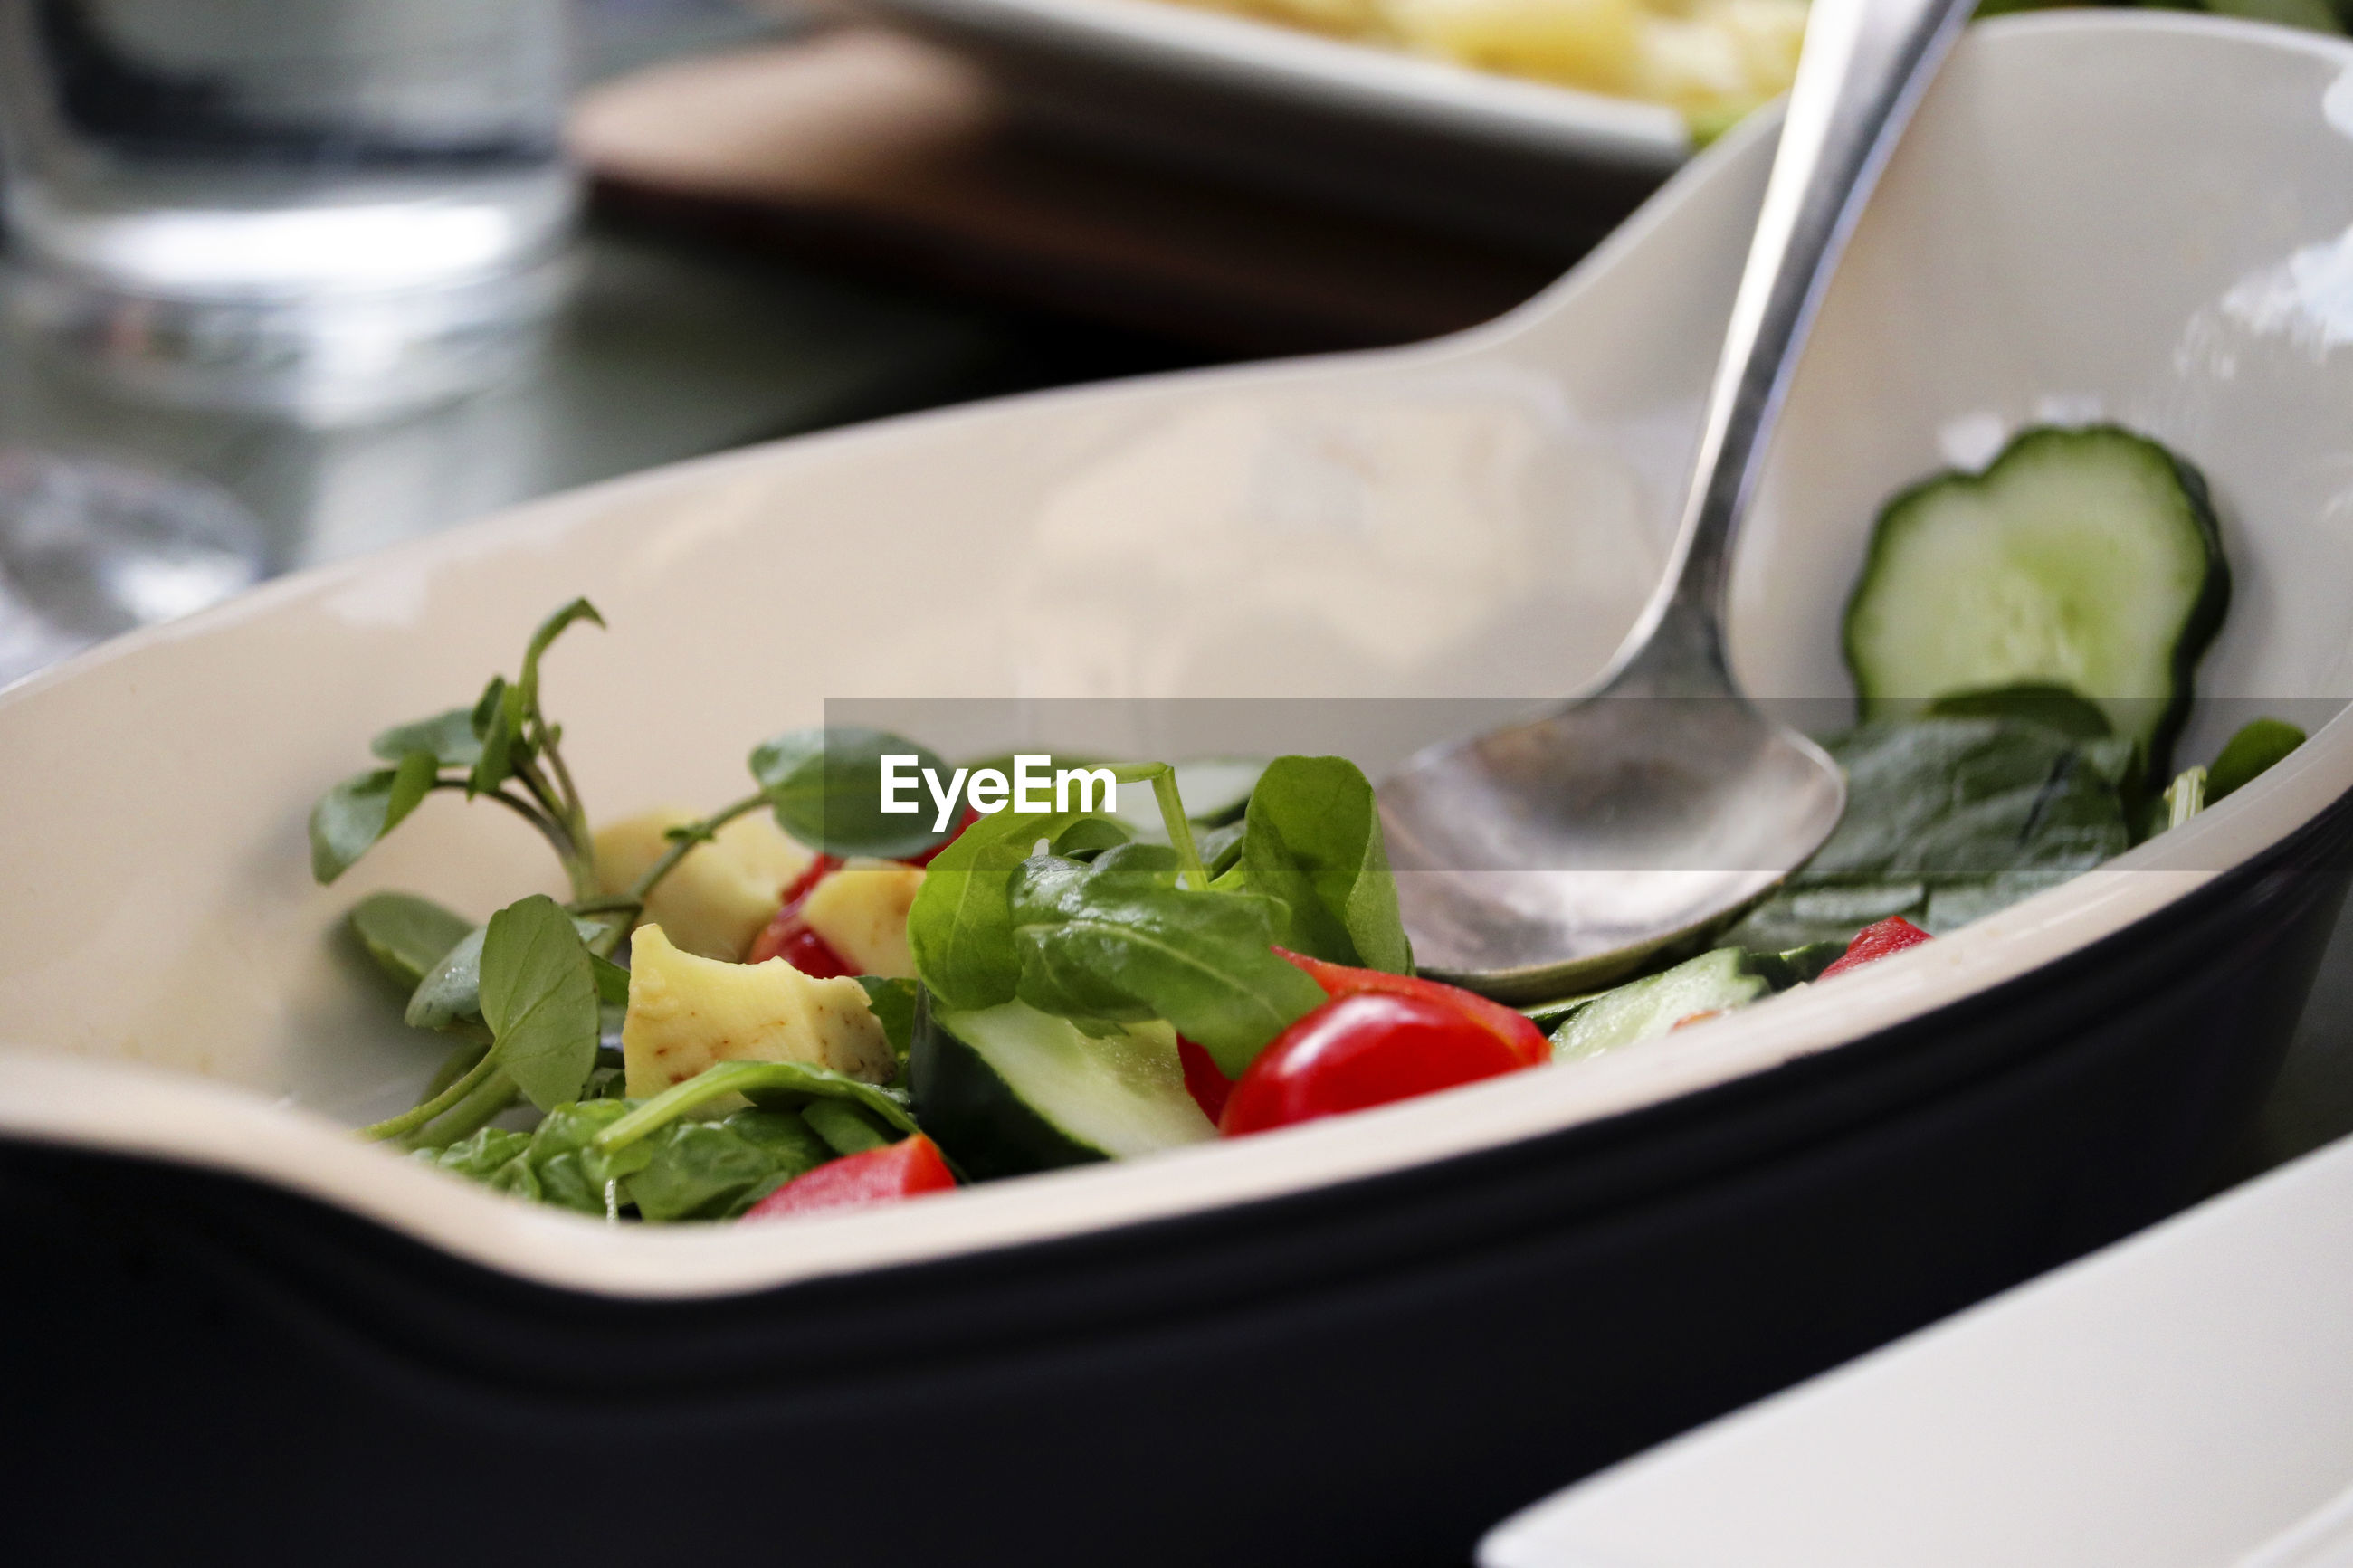 CLOSE-UP OF SALAD IN CONTAINER